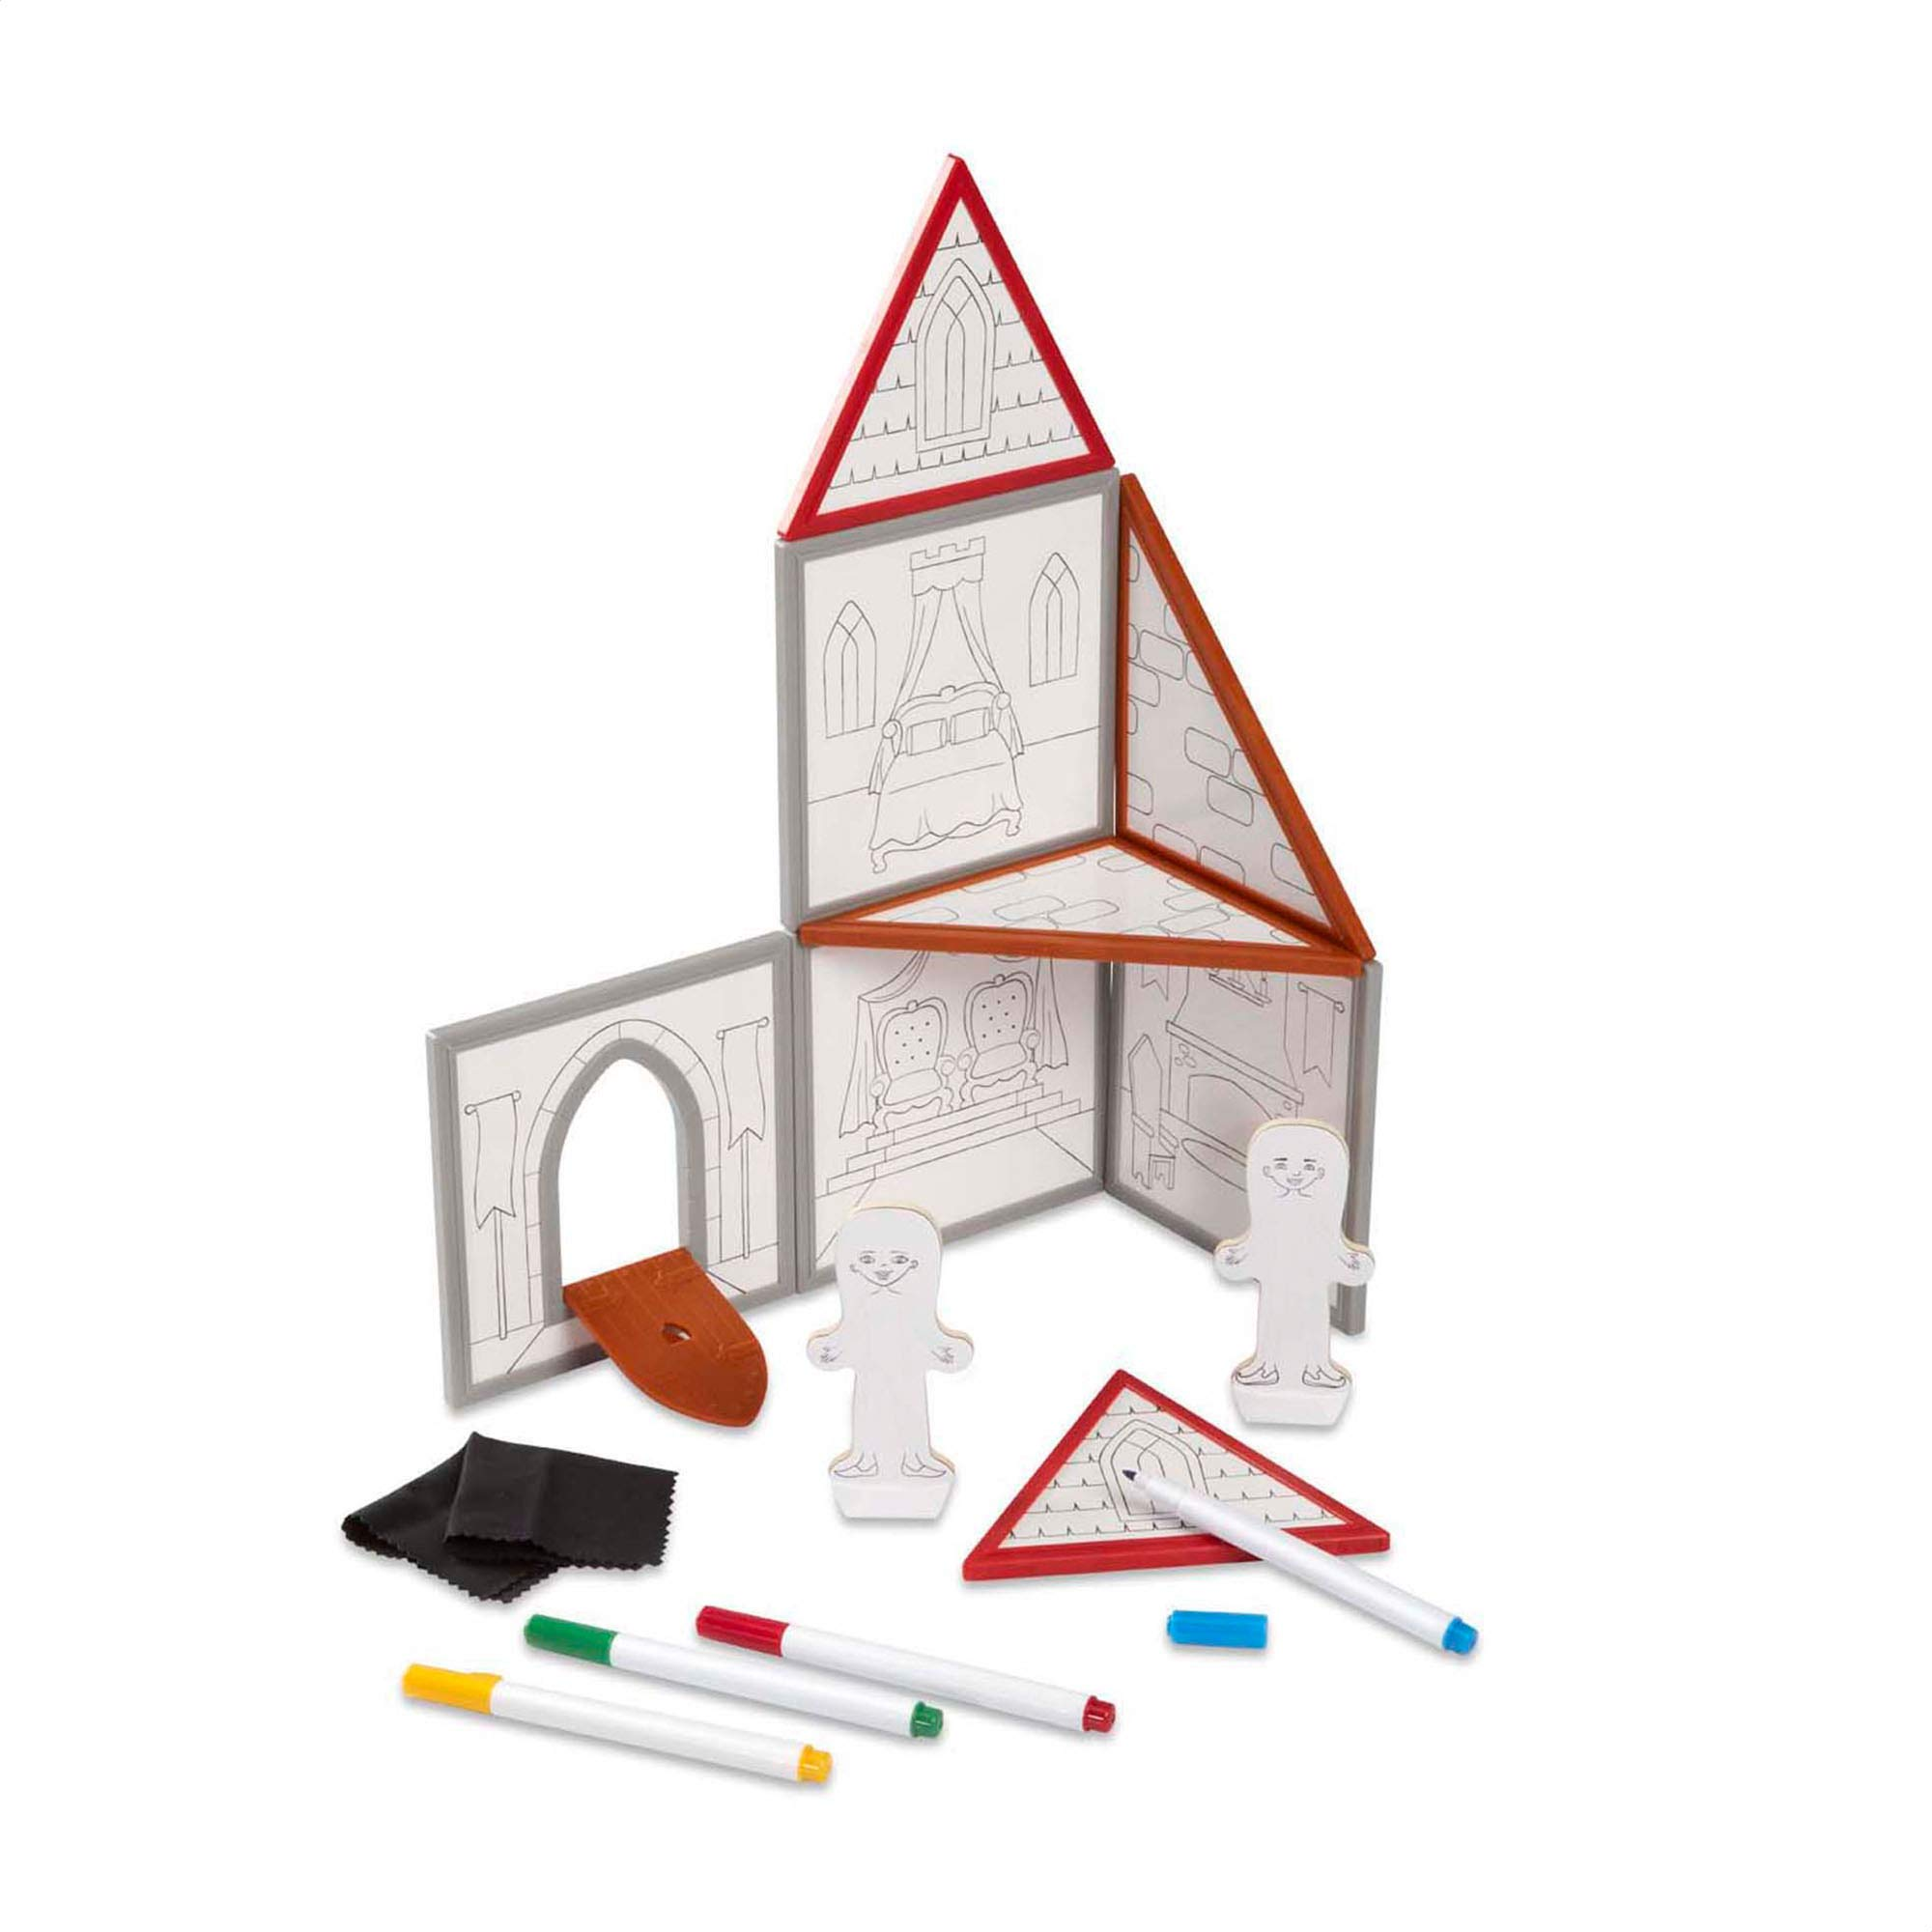 Melissa & Doug Magnetivity Magnetic Building Play Set - Draw & Build Castle (15 Pieces, 8 Panels, 4 Dry-Erase Markers, Great Gift for Girls and Boys - Best for 4, 5, 6, 7, 8, 9, and 10 Year Olds) by Melissa & Doug